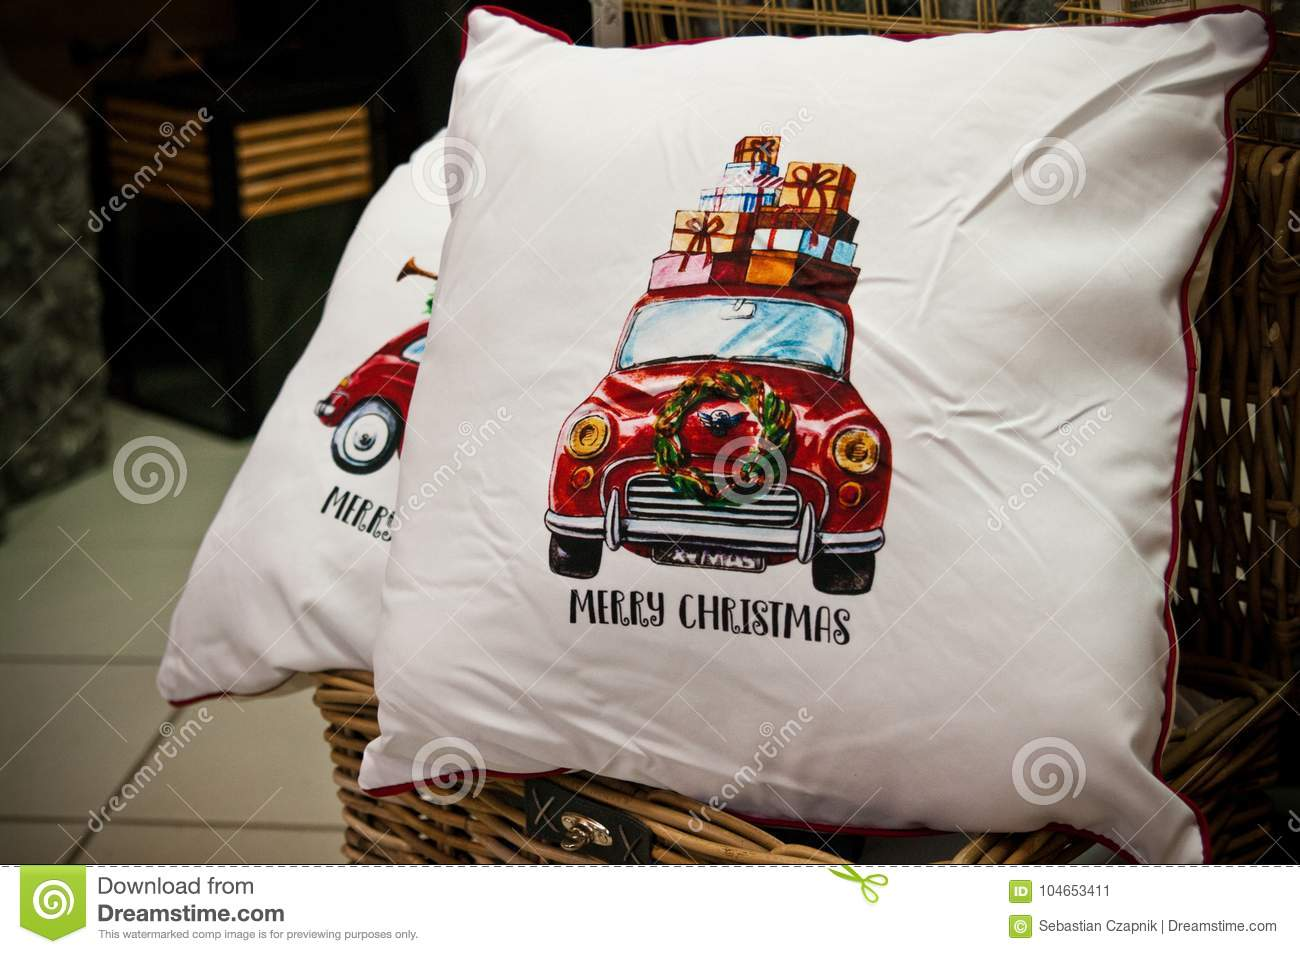 Christmas Pillows Or Cushions For Sale Stock Image Image Of Home